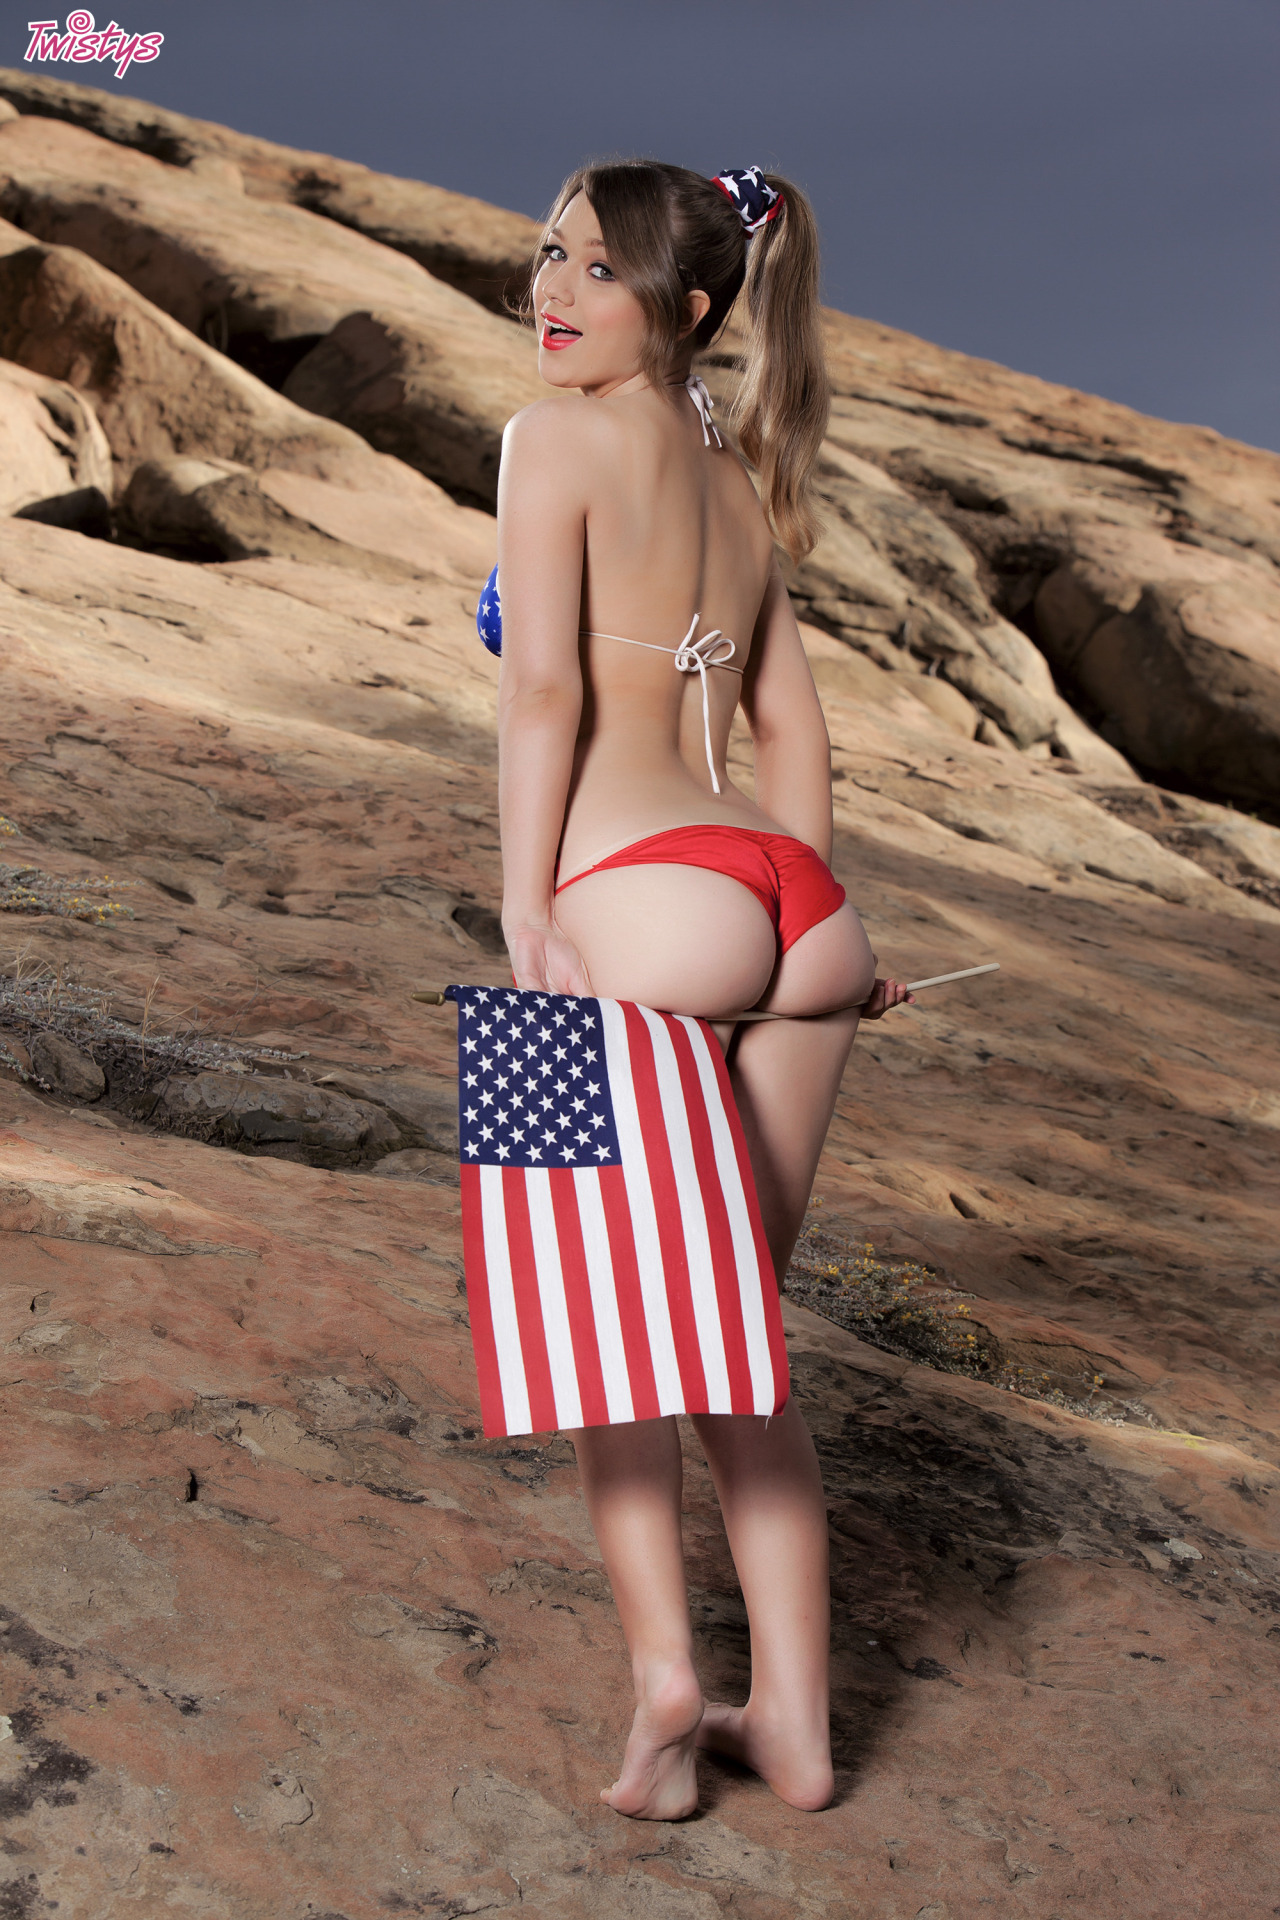 Alaina Fox, Wishing You A Very Happy 4th Of July 2